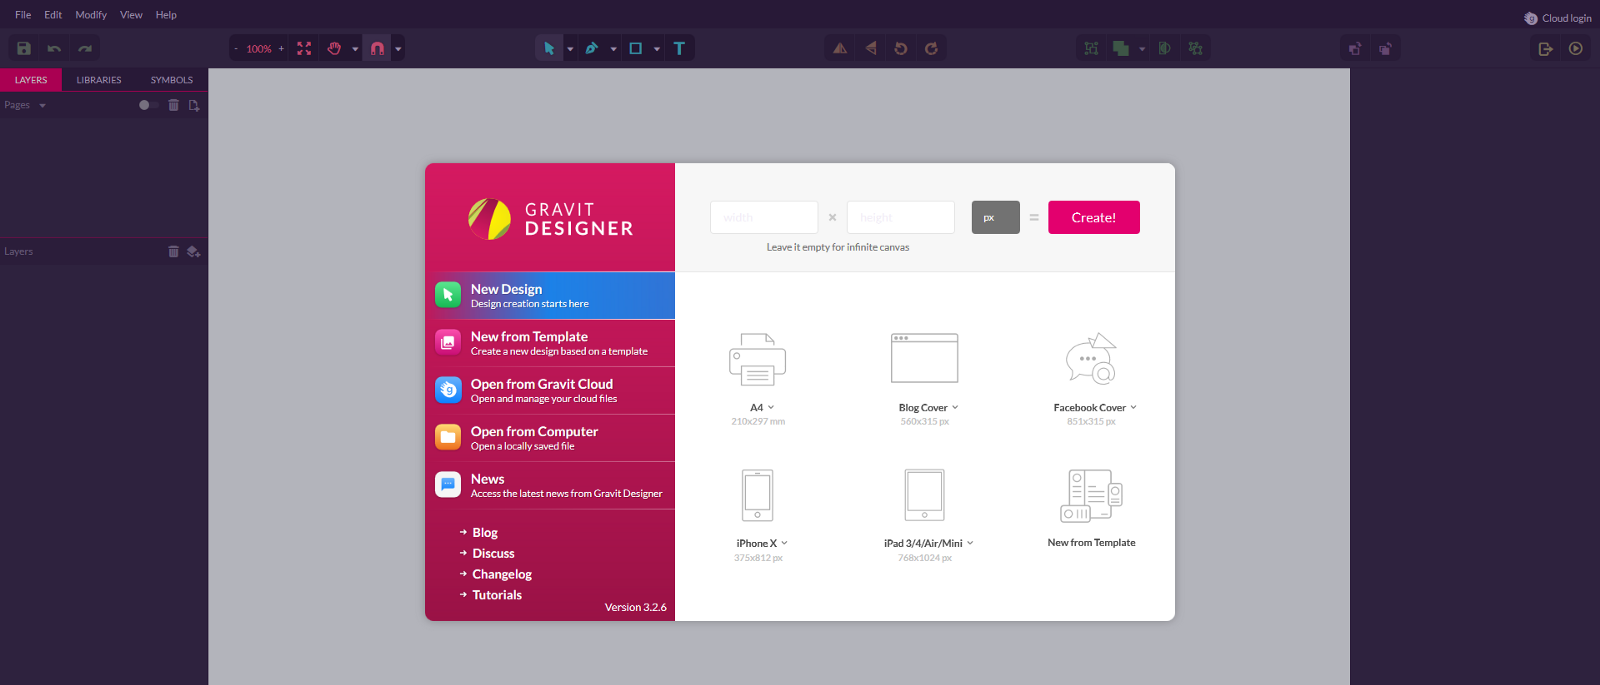 Adobe xd free download for ubuntu | Adobe XD Free UI kits